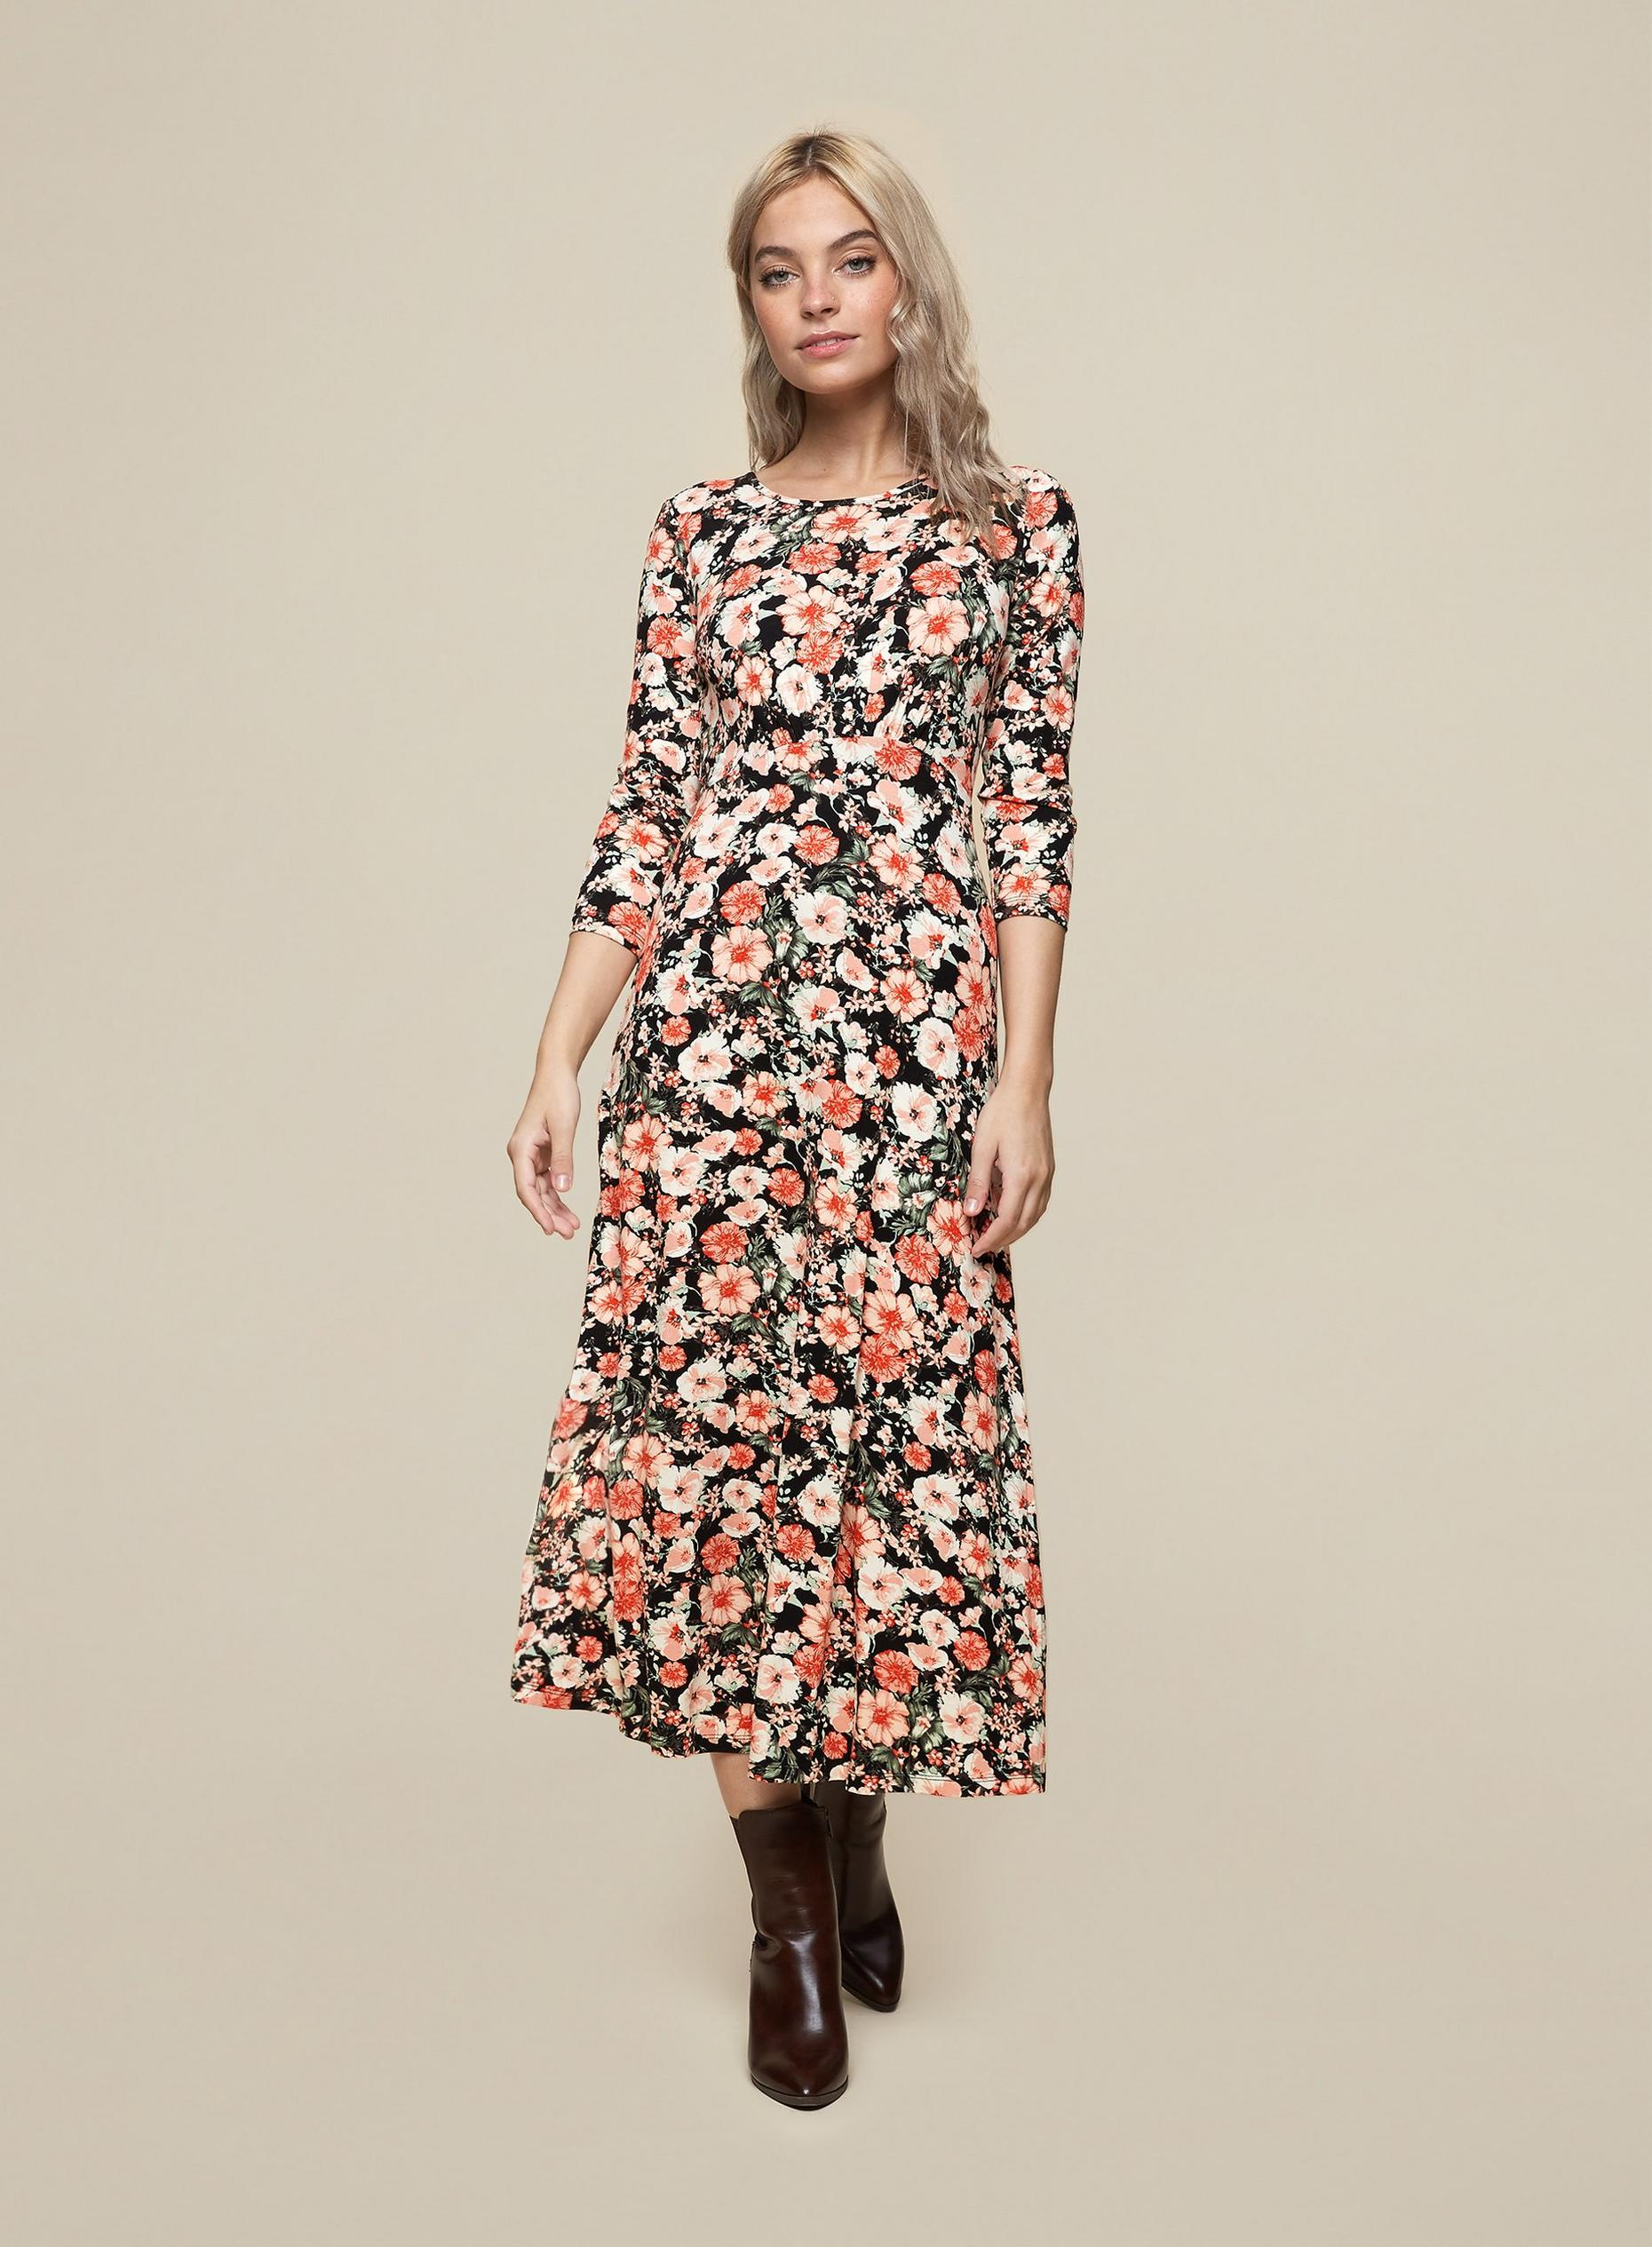 Petite Black Floral Print Midi Dress